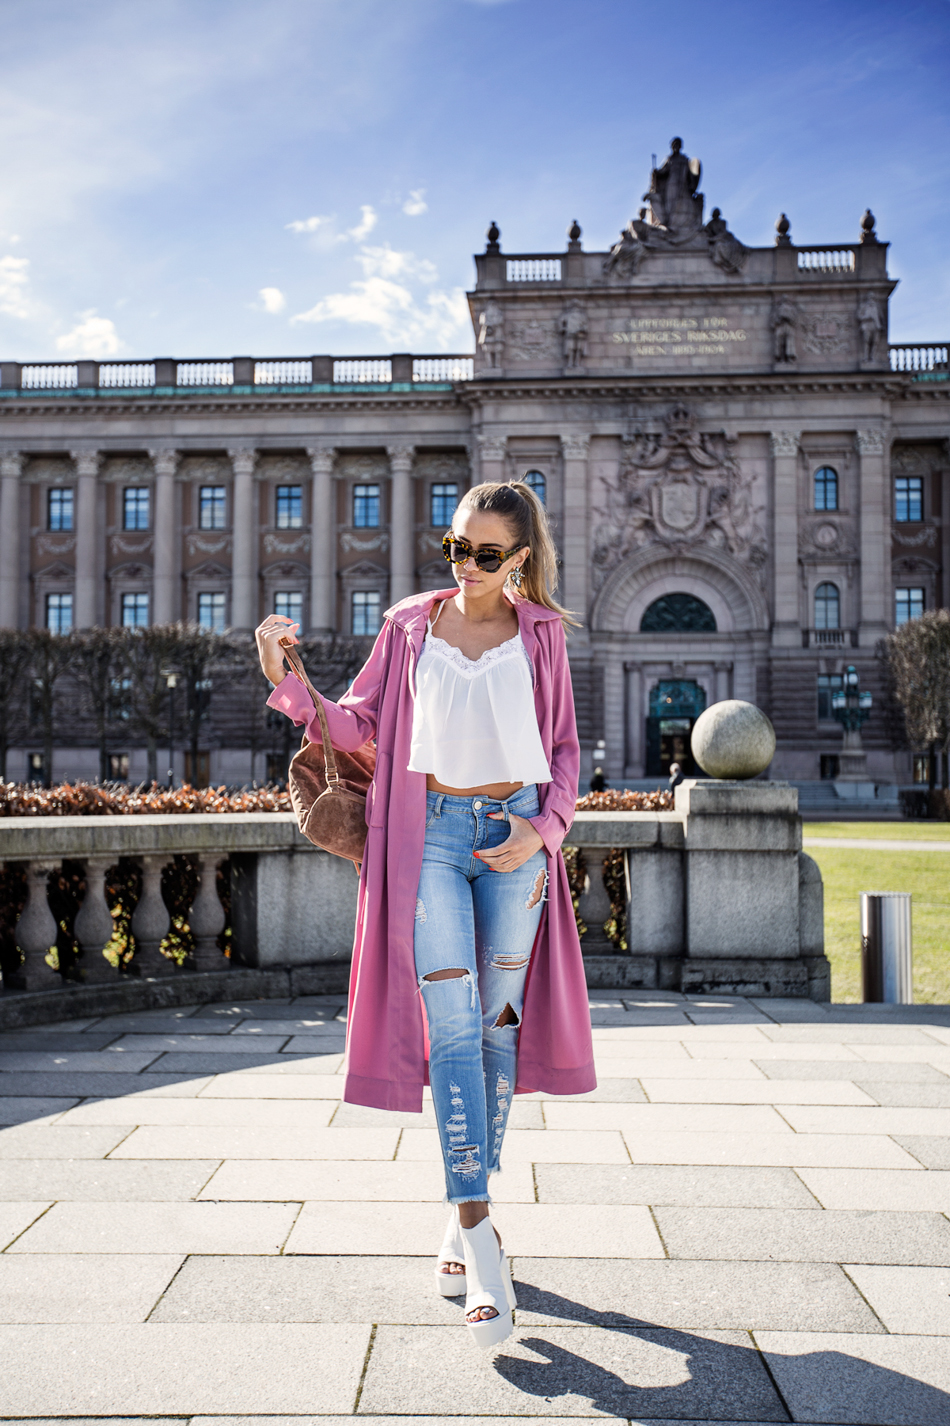 Via Just The Design: Kenza Zouiten is wearing a pink trench coat with a white NYL lace top, denim skinny jeans and white wedges